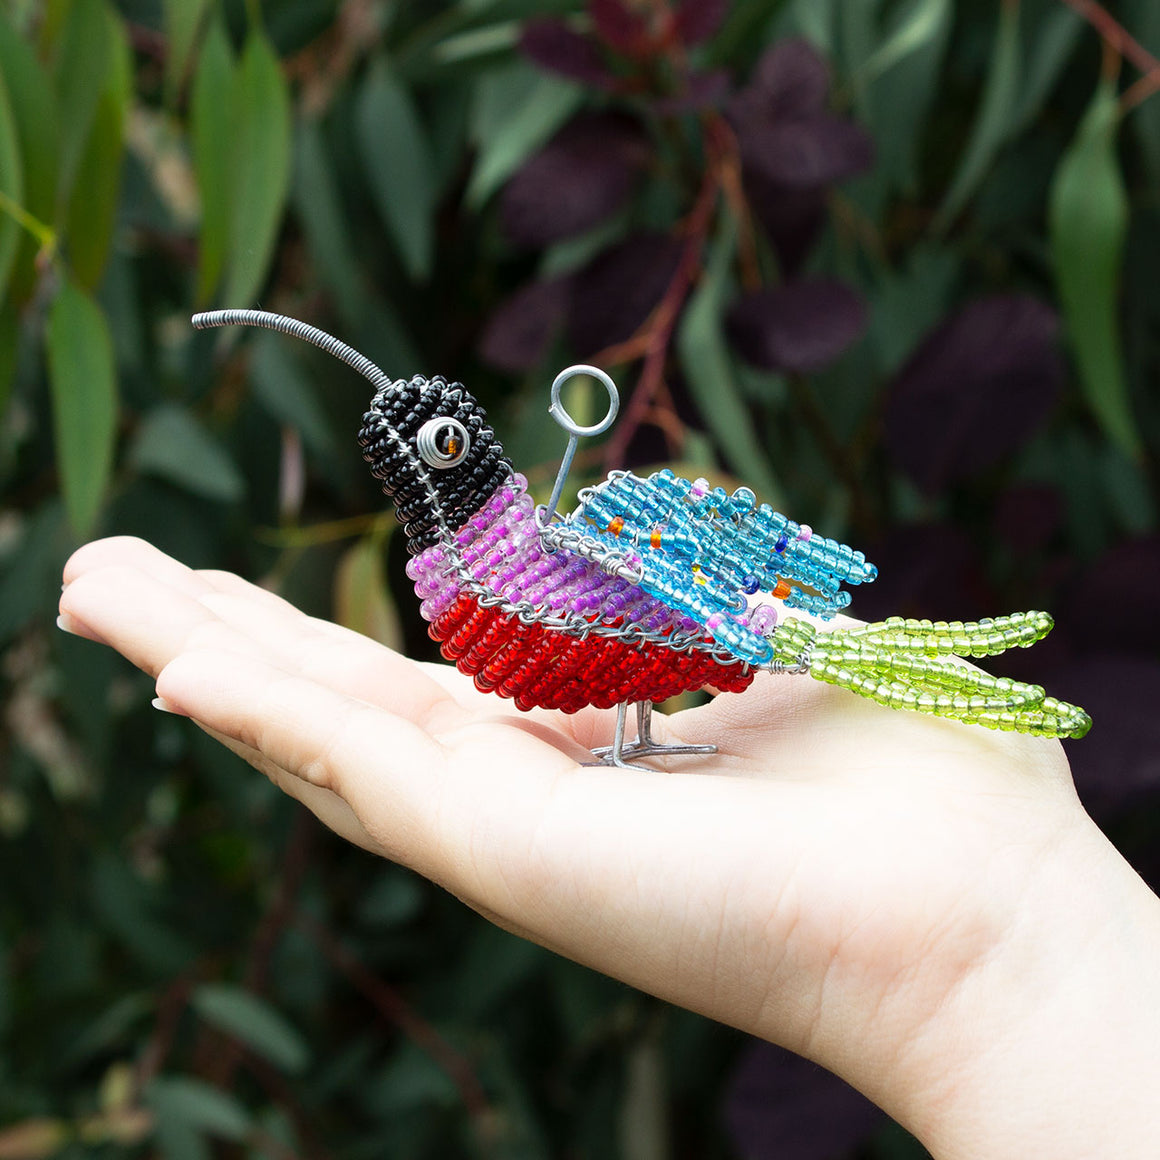 Zimbabwean Beaded Humming Bird Decoration